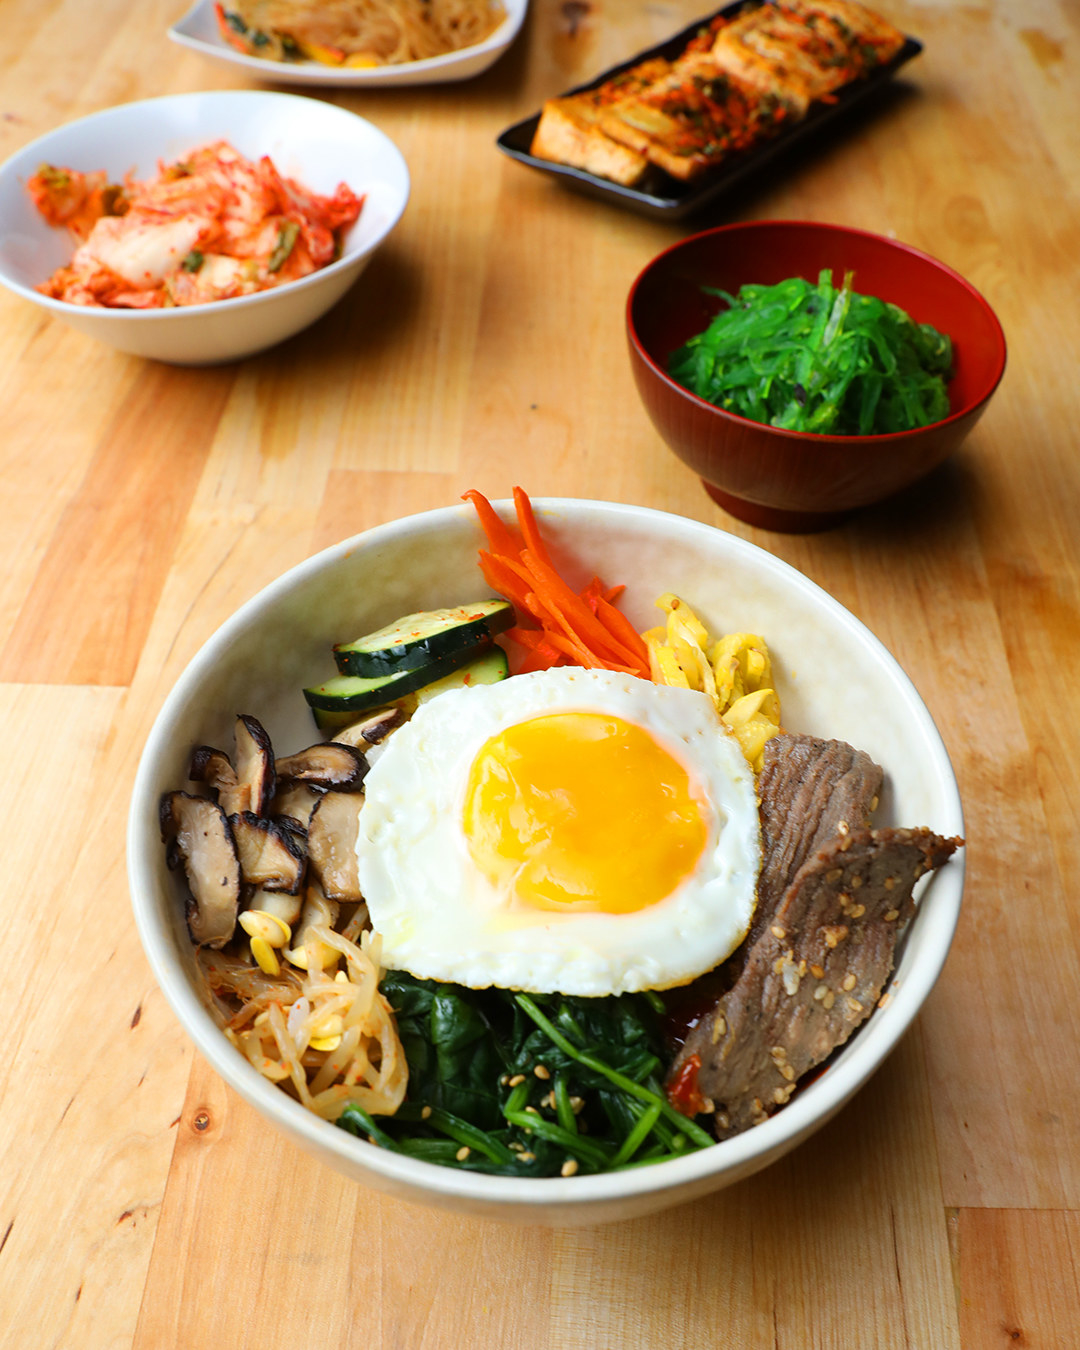 You Need To Make This Homeamde Bibimbap For Asian Pacific American Heritage Month